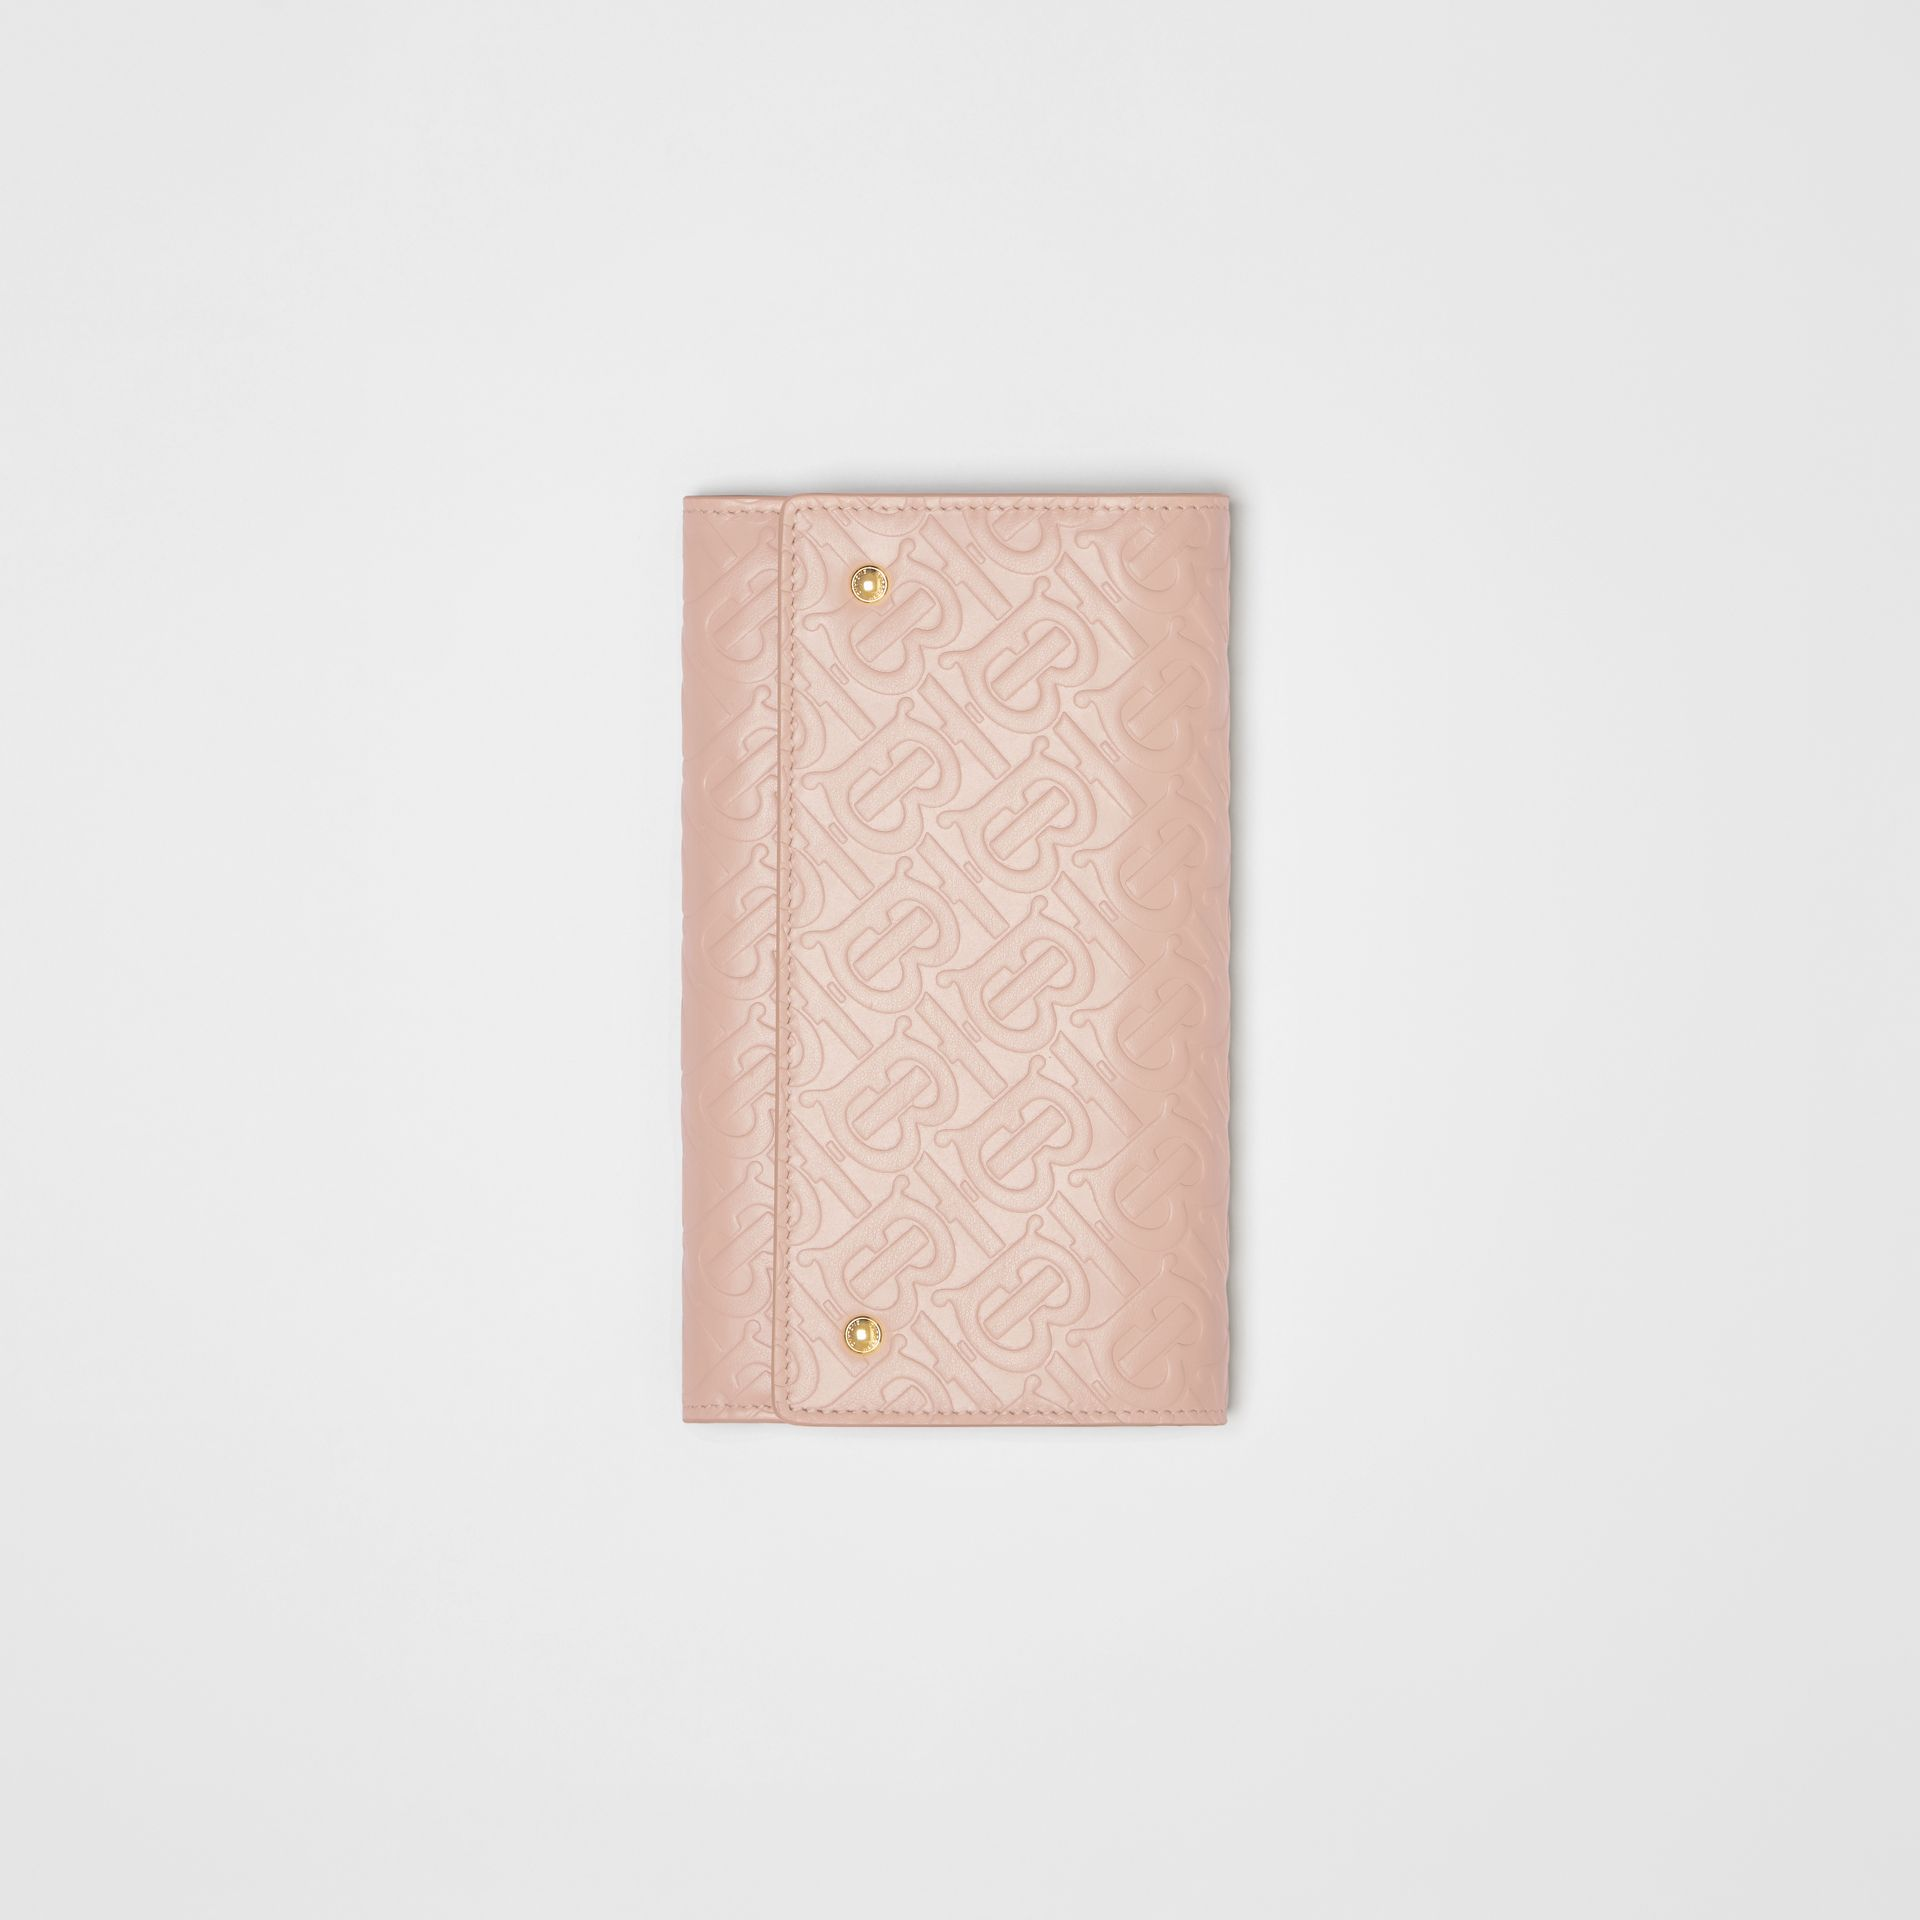 Monogram Leather Wallet with Detachable Strap in Rose Beige - Women | Burberry Singapore - gallery image 6